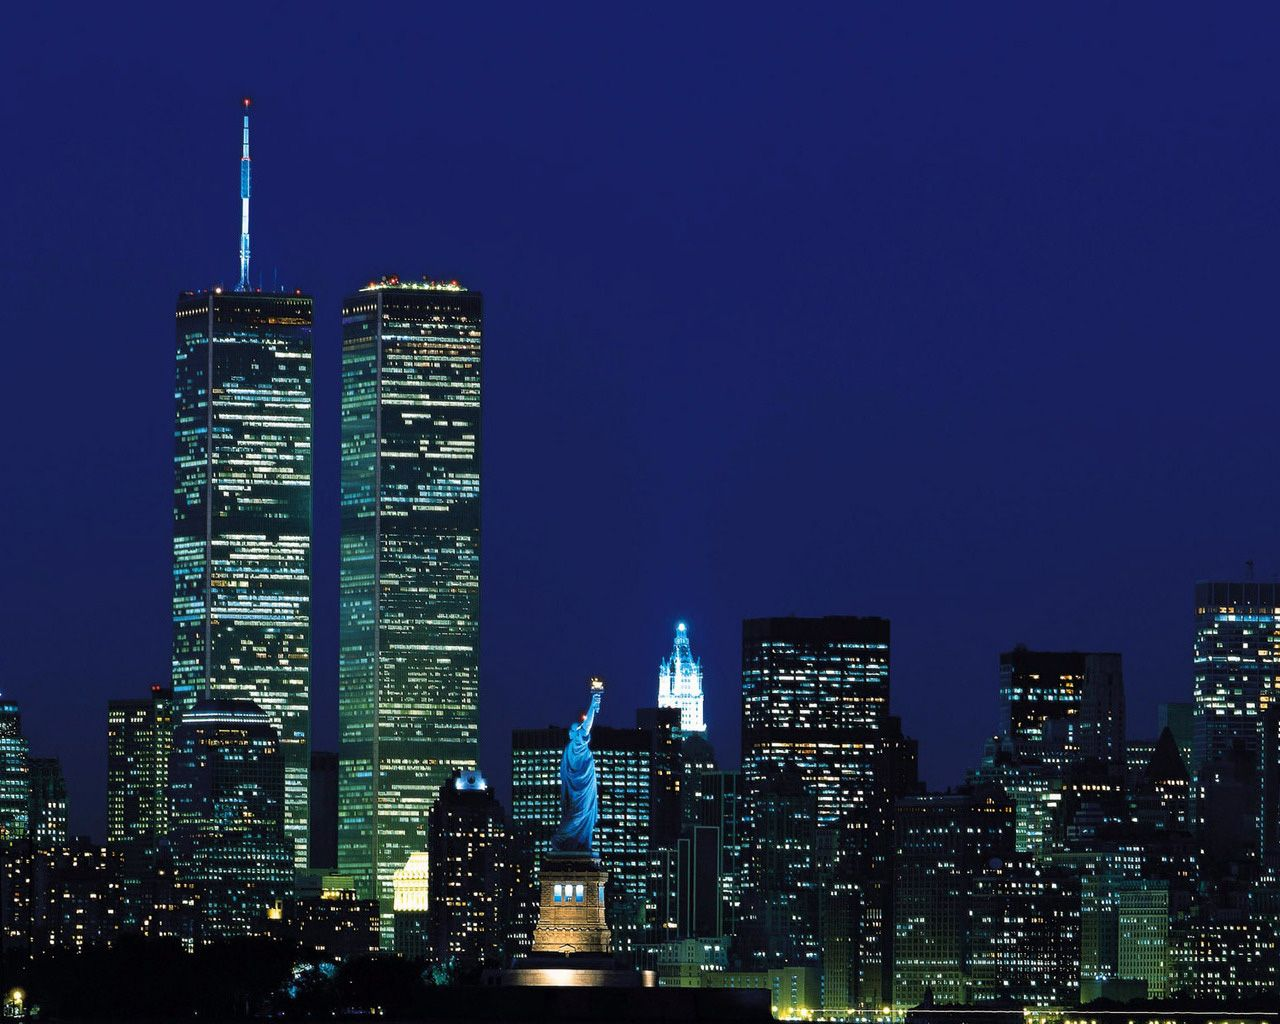 New York City At Night \u2013 HD Wallpaper City  America \ufe0f  Pinterest  Hd wallpaper, Wallpaper and